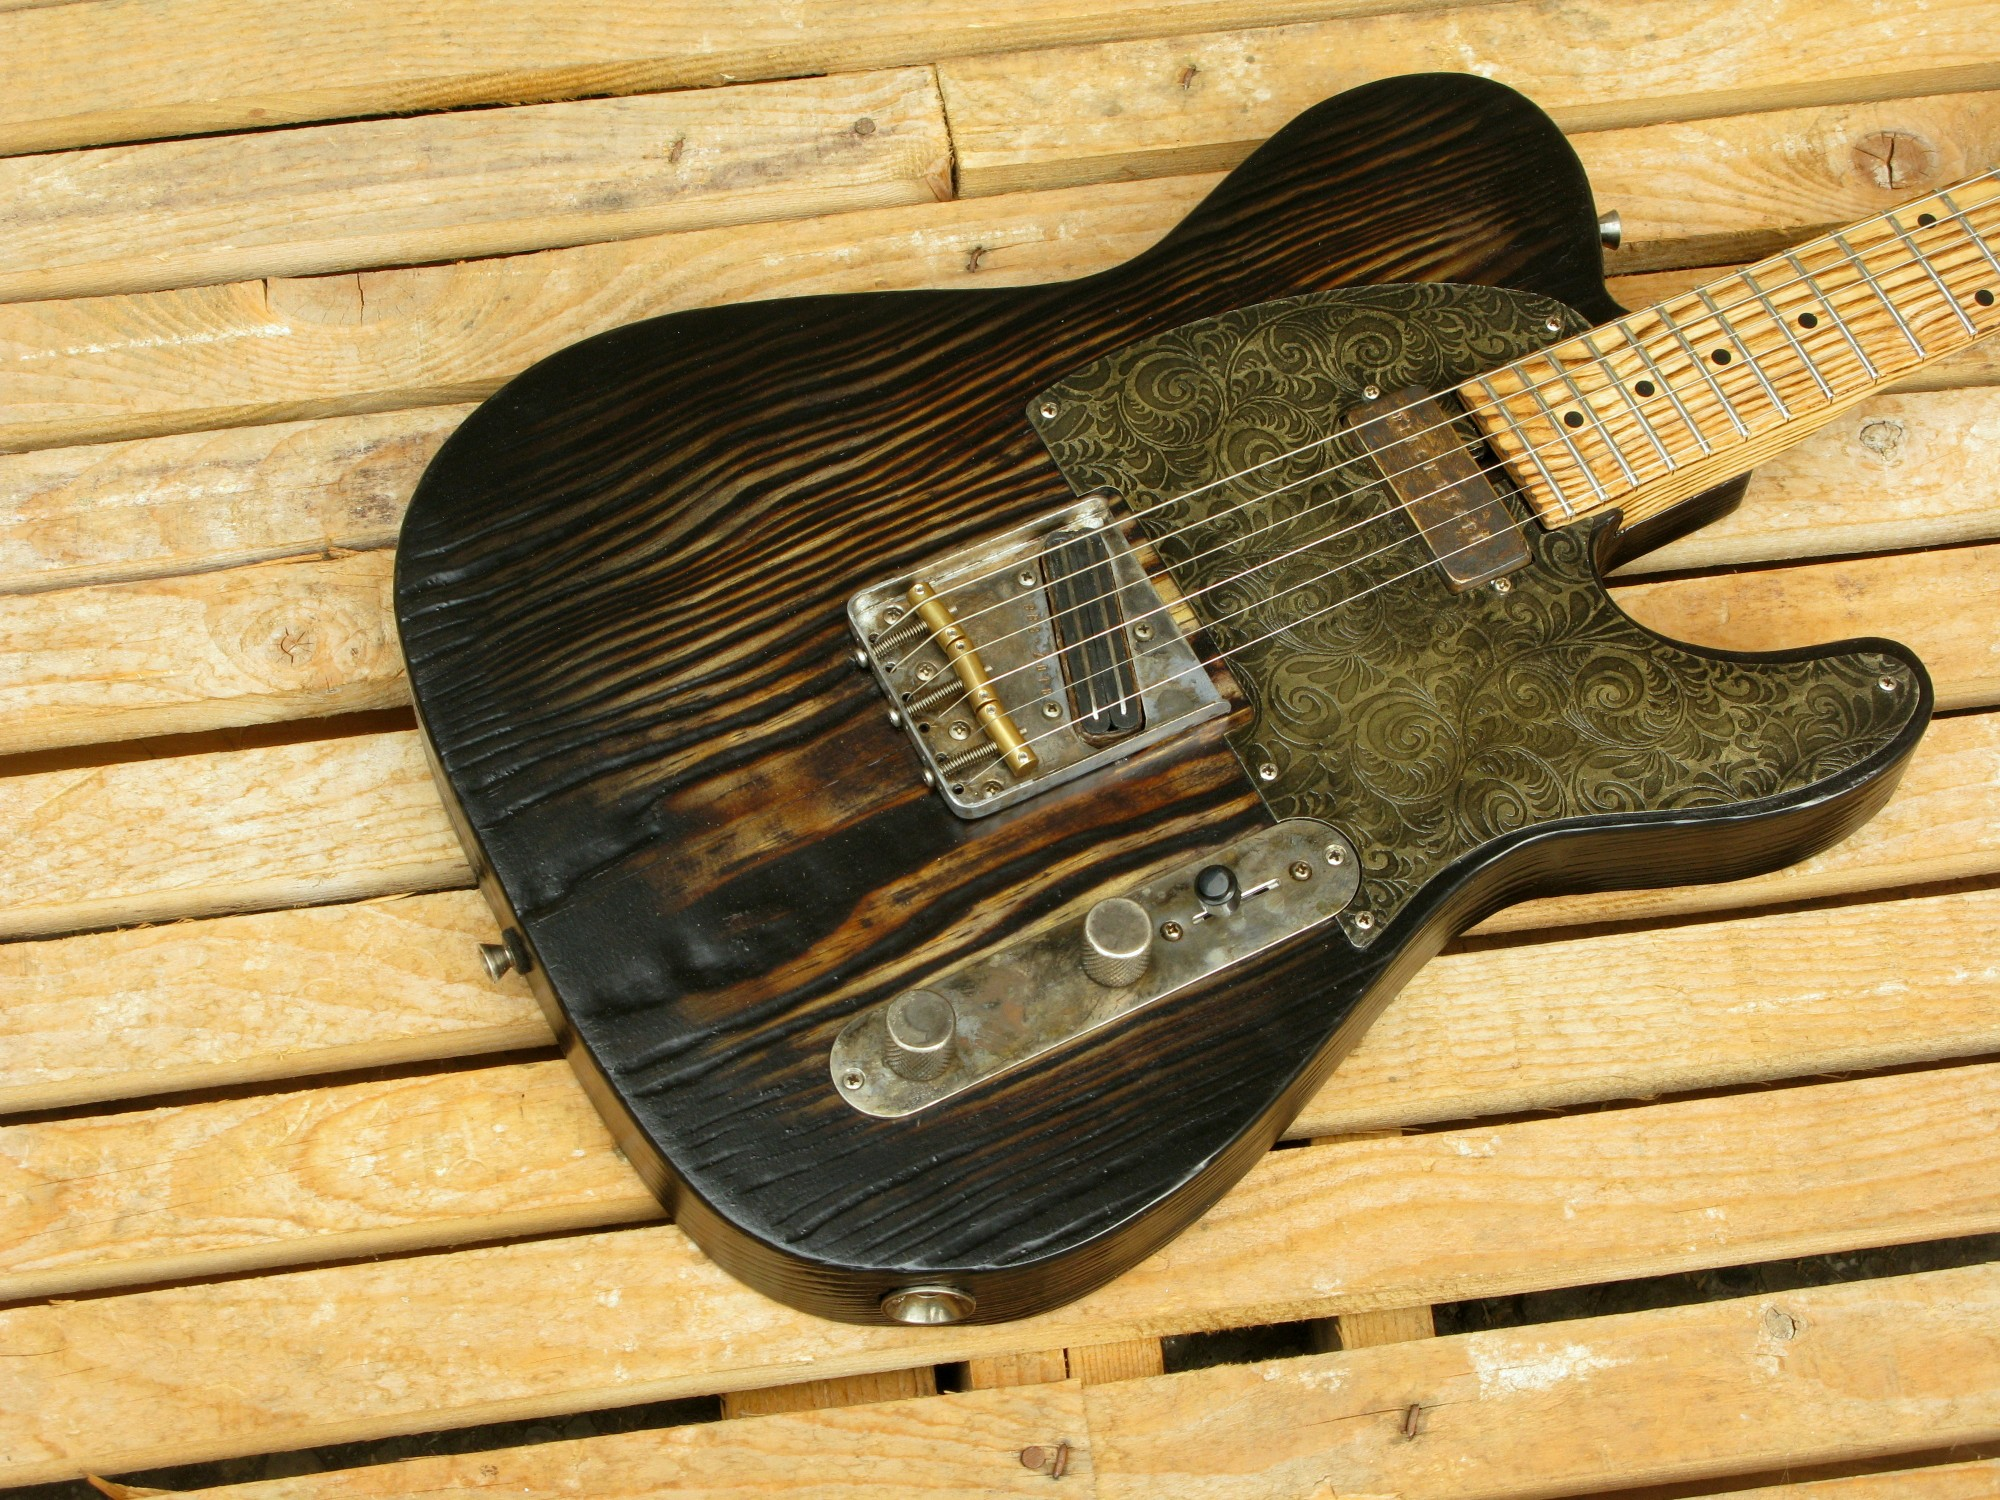 Body di una Telecaster in yellow pine, battipenna inciso e manico in frassino